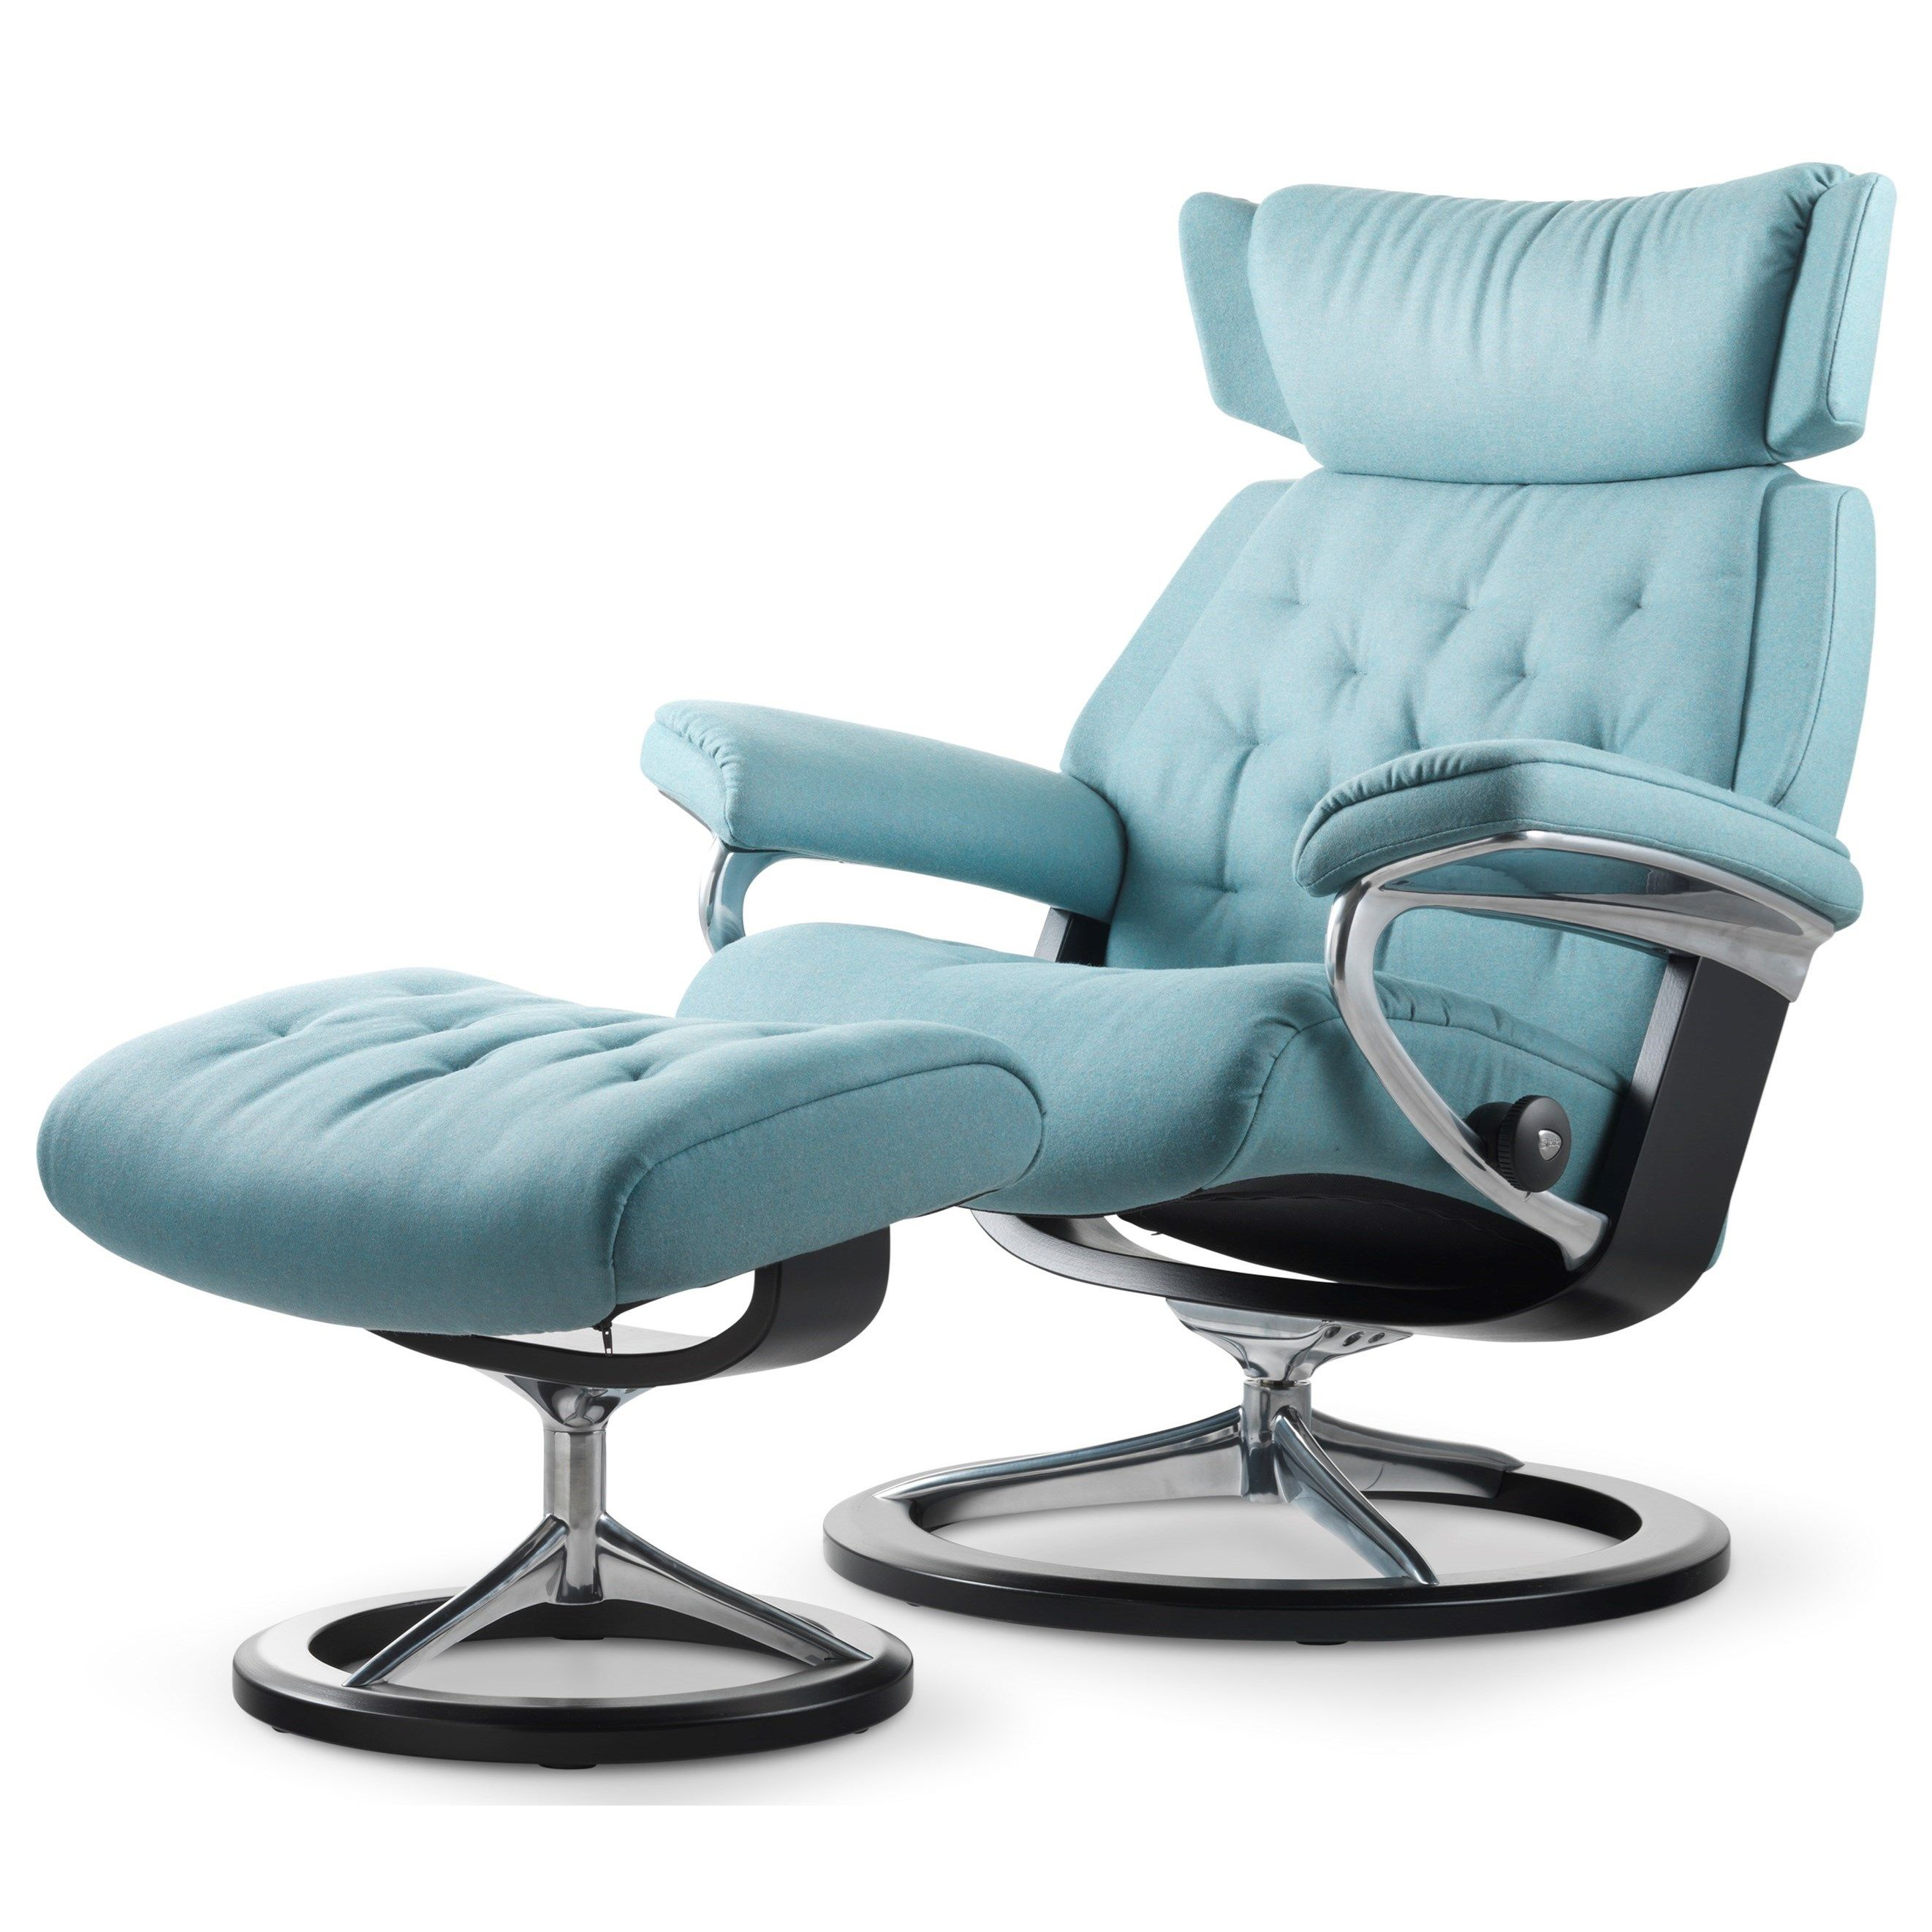 Rocking Chair And Nap Sofa By Missonihome: Stressless Skyline Small Signature Chair By Stressless By